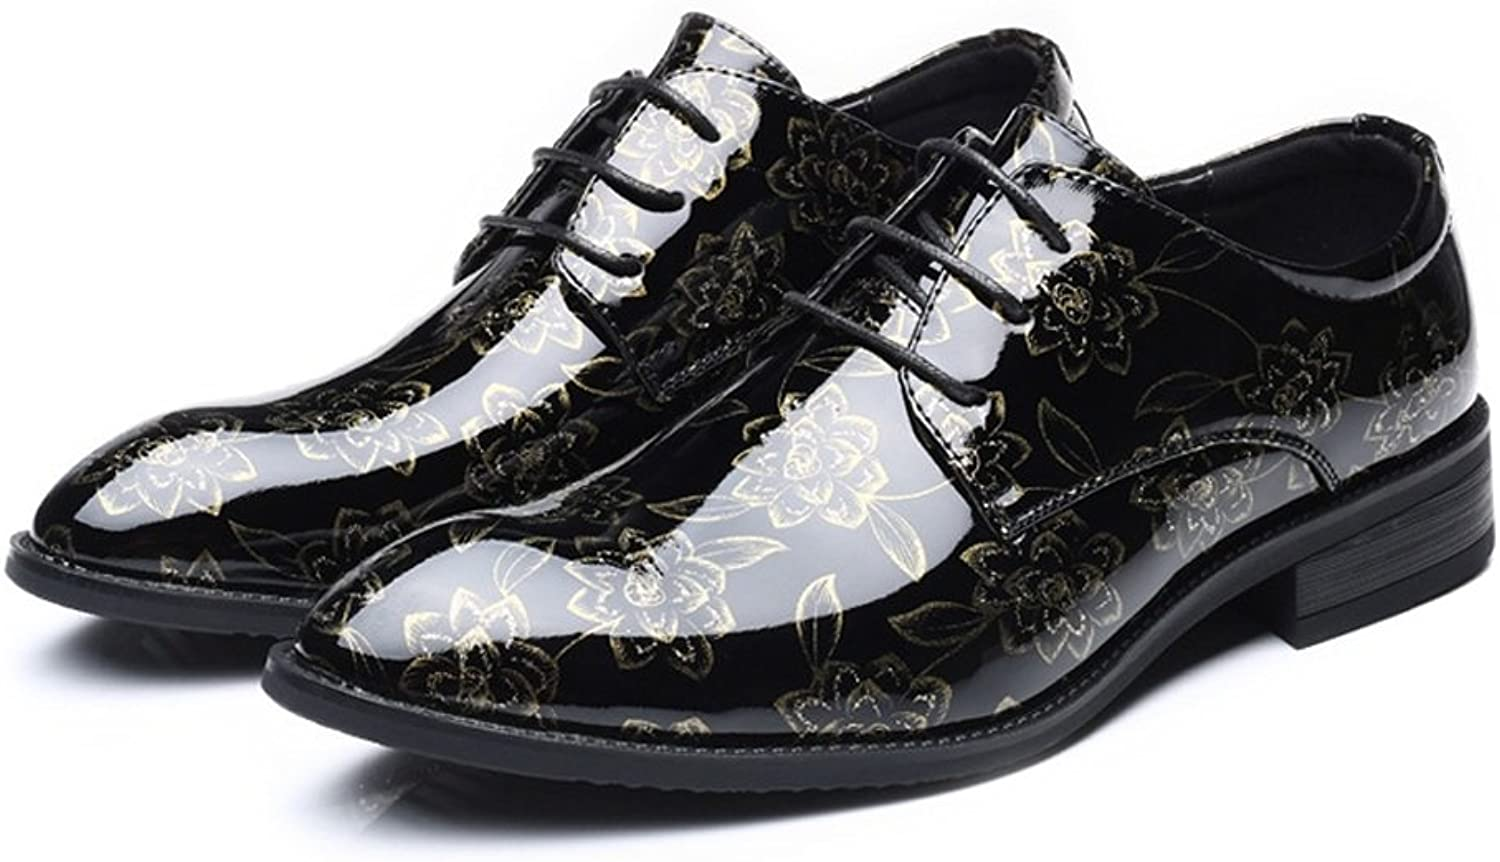 FeiNianJSh Men's Smooth Flower Pattern shoes PU Leather shoes Upper Lace Up Breathable Lined Block Heel Oxfords shoes